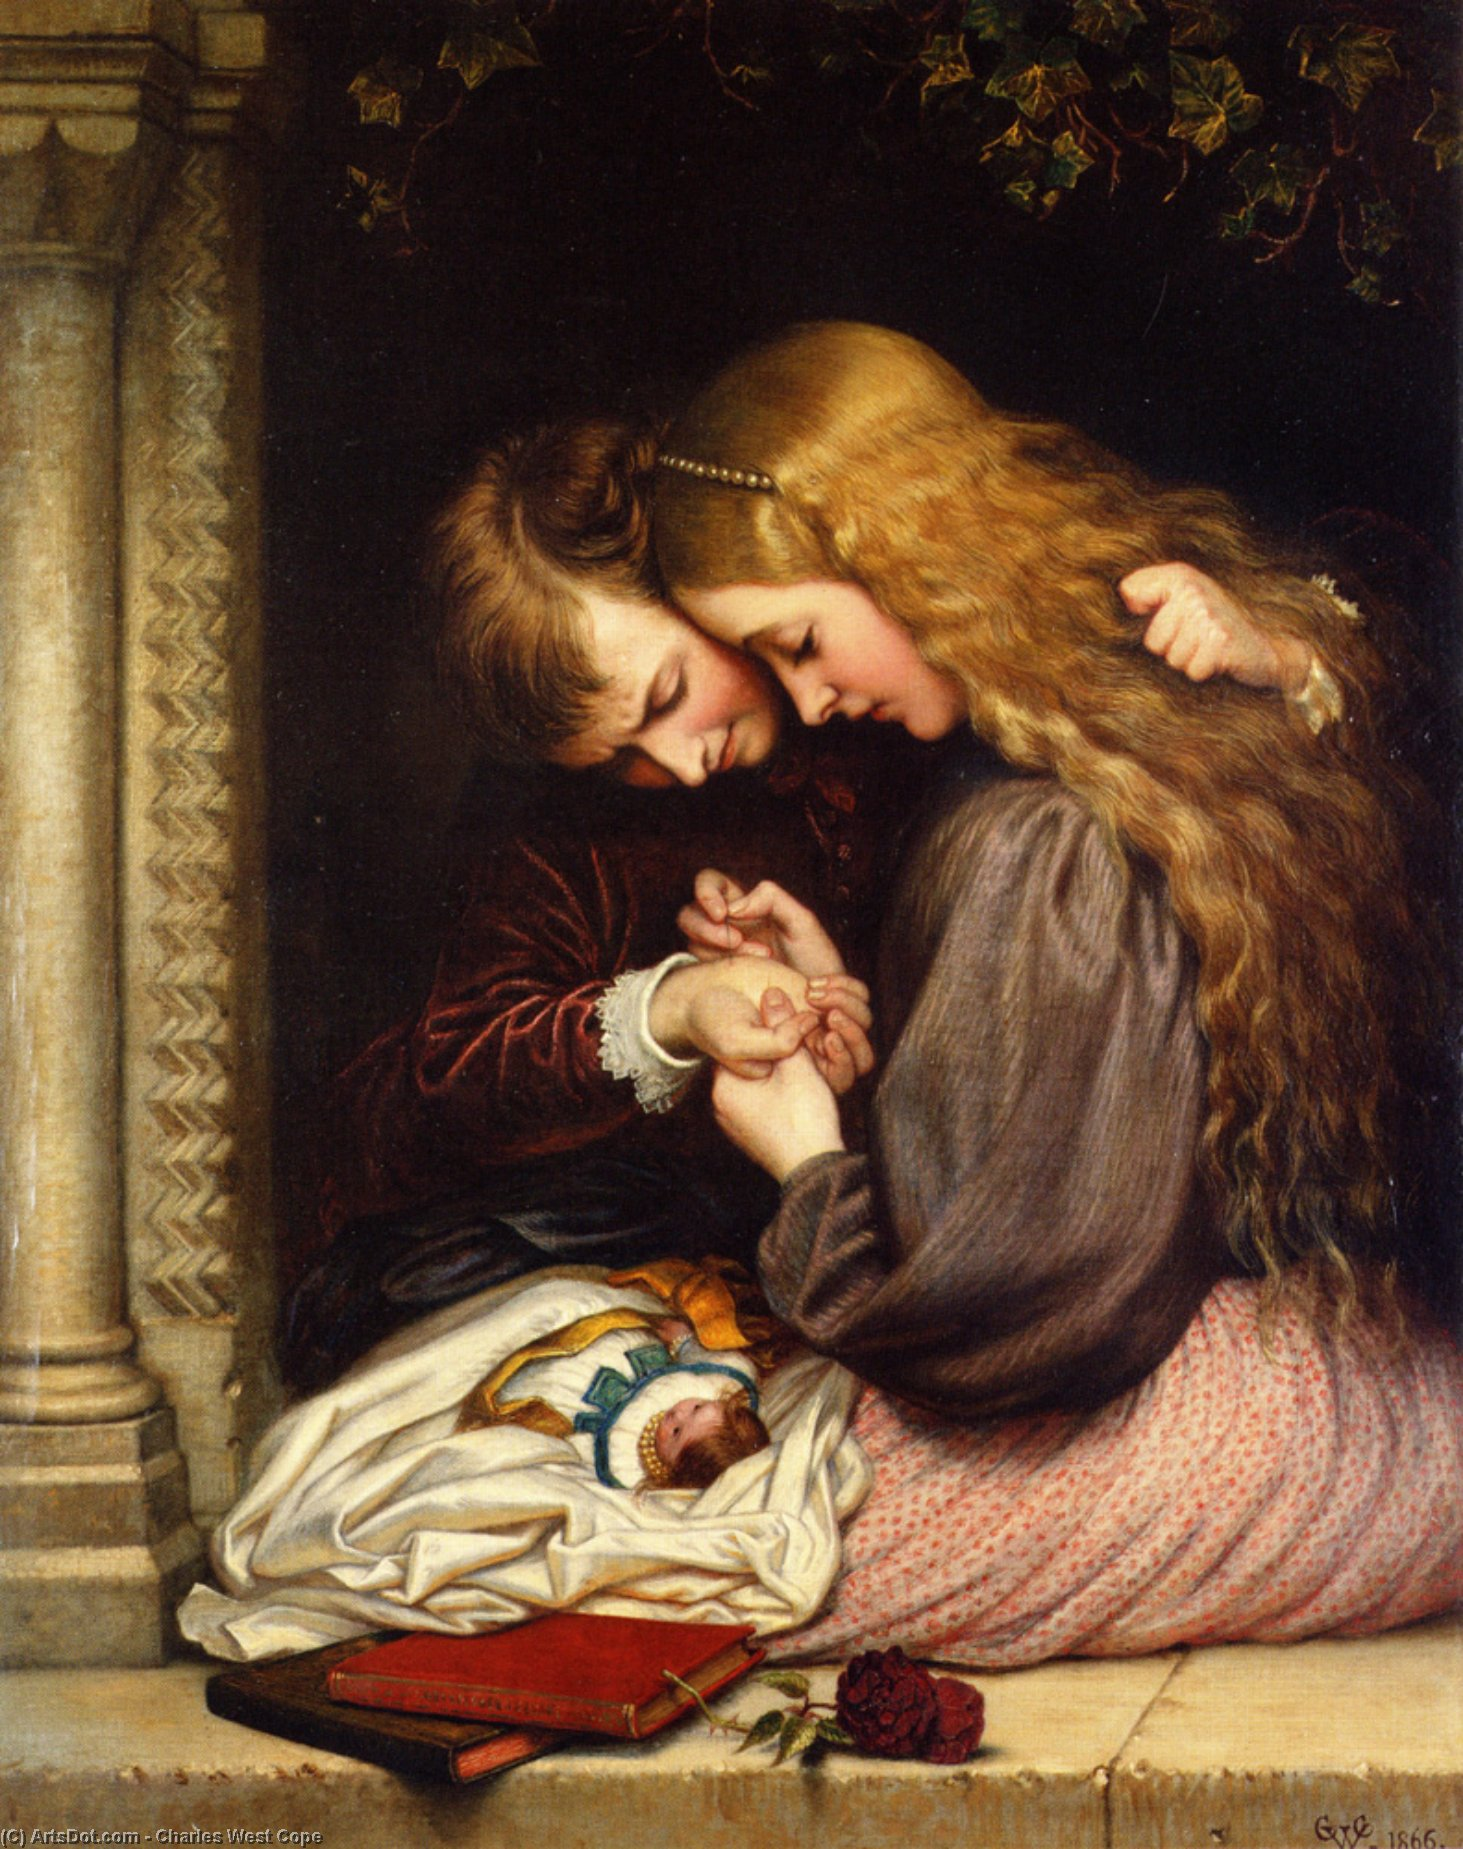 The thorn, 1866 by Charles West Cope (1811-1890, United Kingdom) | ArtsDot.com